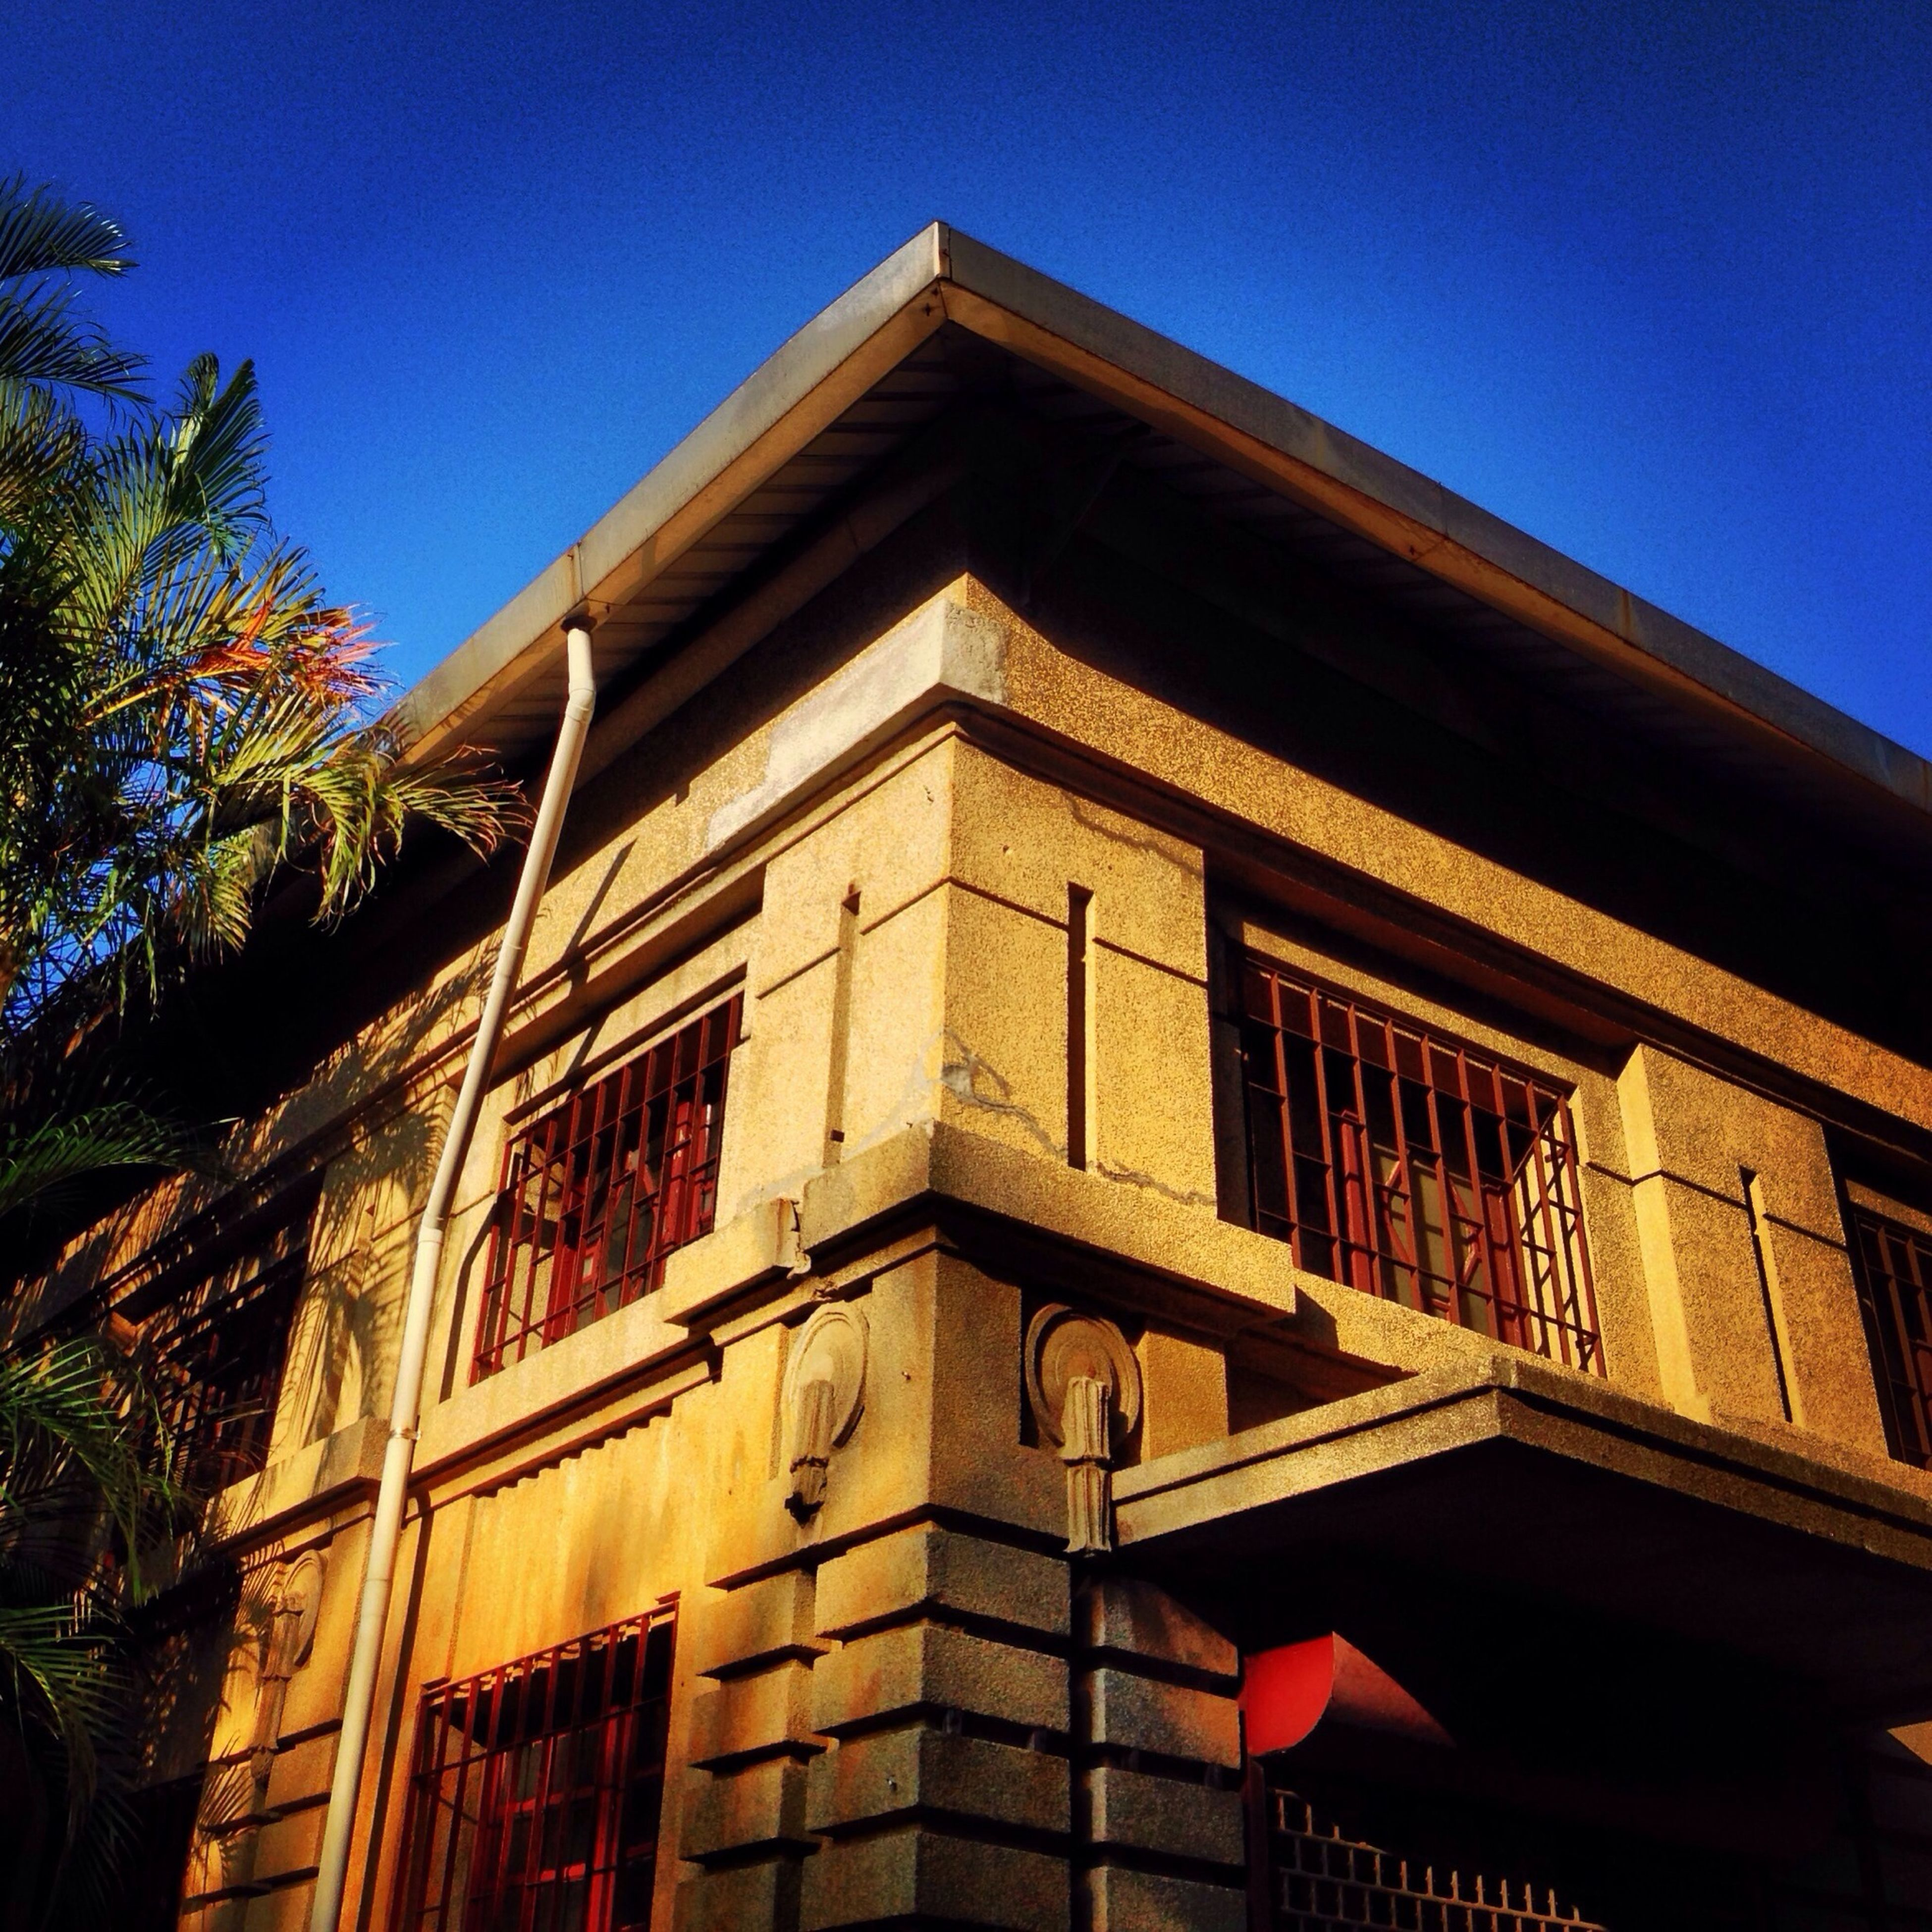 building exterior, architecture, built structure, low angle view, clear sky, blue, residential structure, residential building, window, house, tree, building, sunlight, outdoors, day, no people, sky, exterior, city, balcony